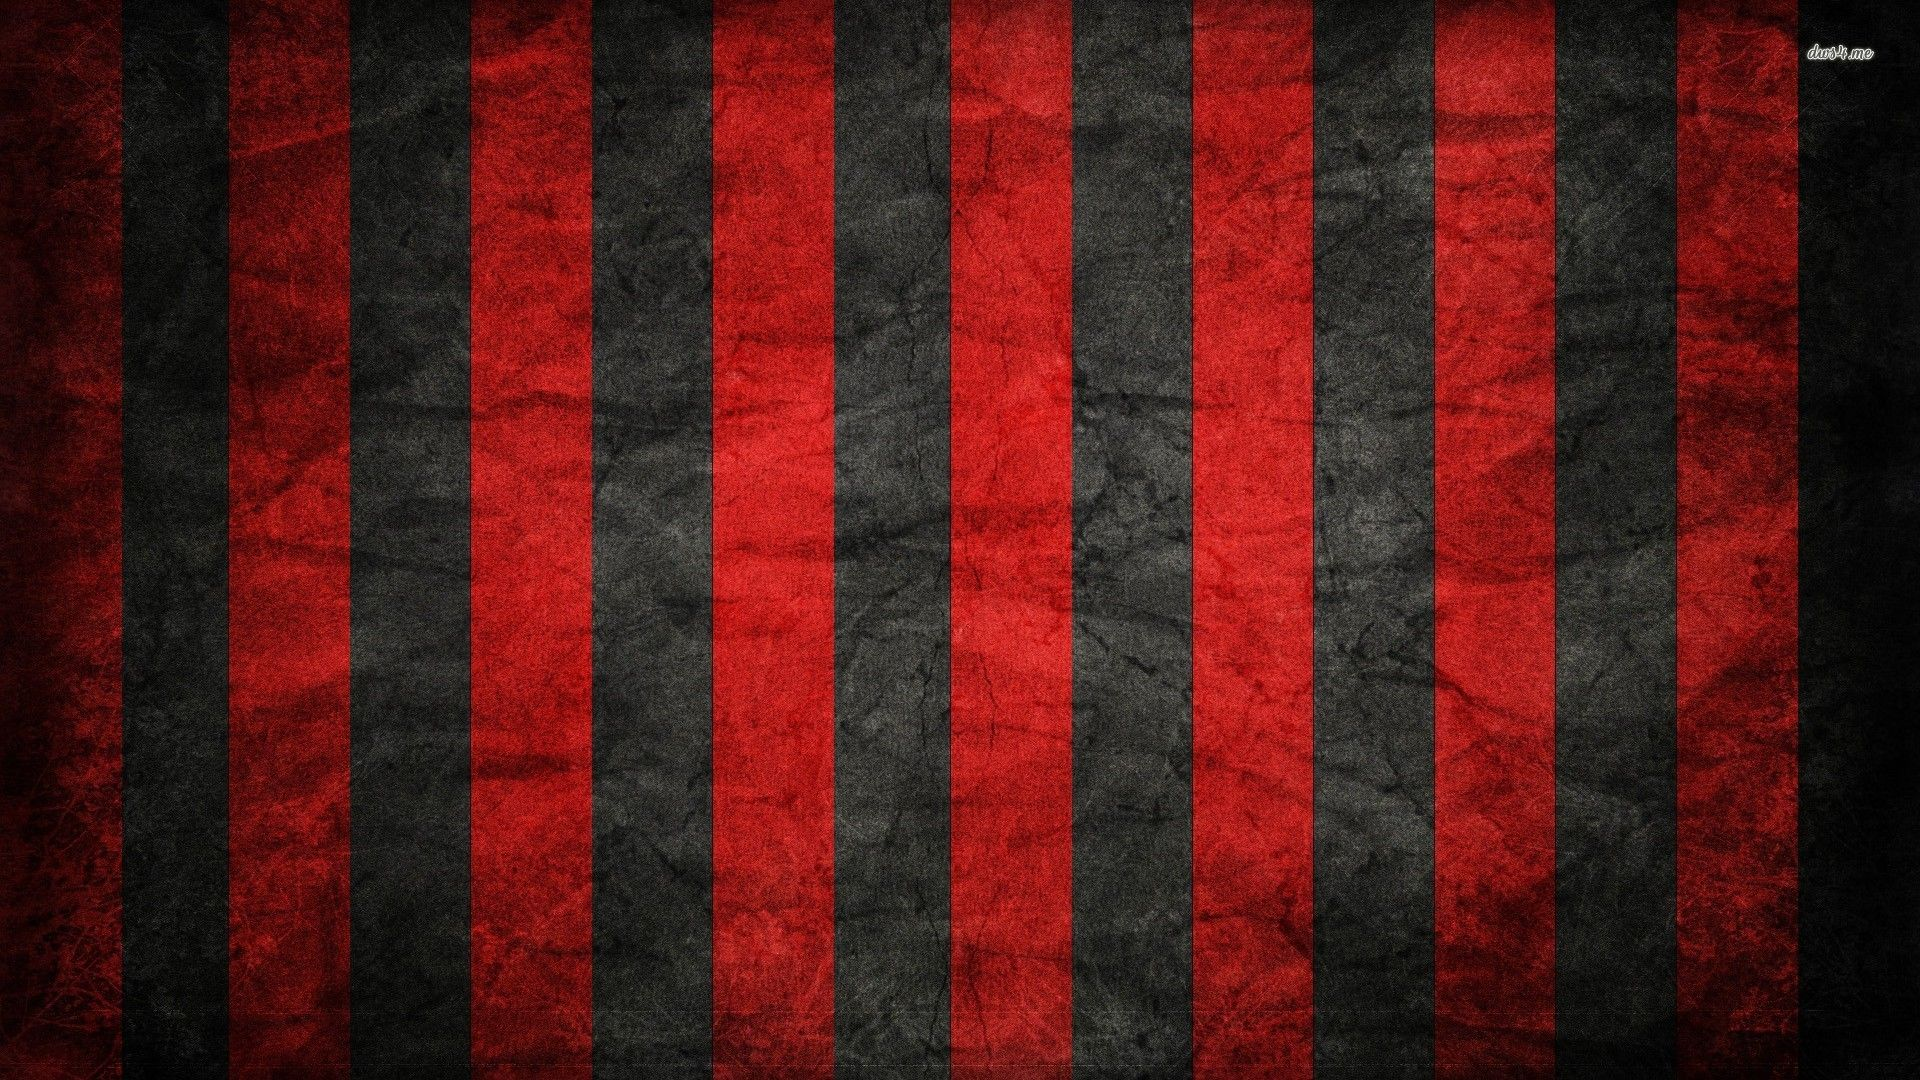 Hd wallpaper red and black - Hd Wallpaper Red And Black 31